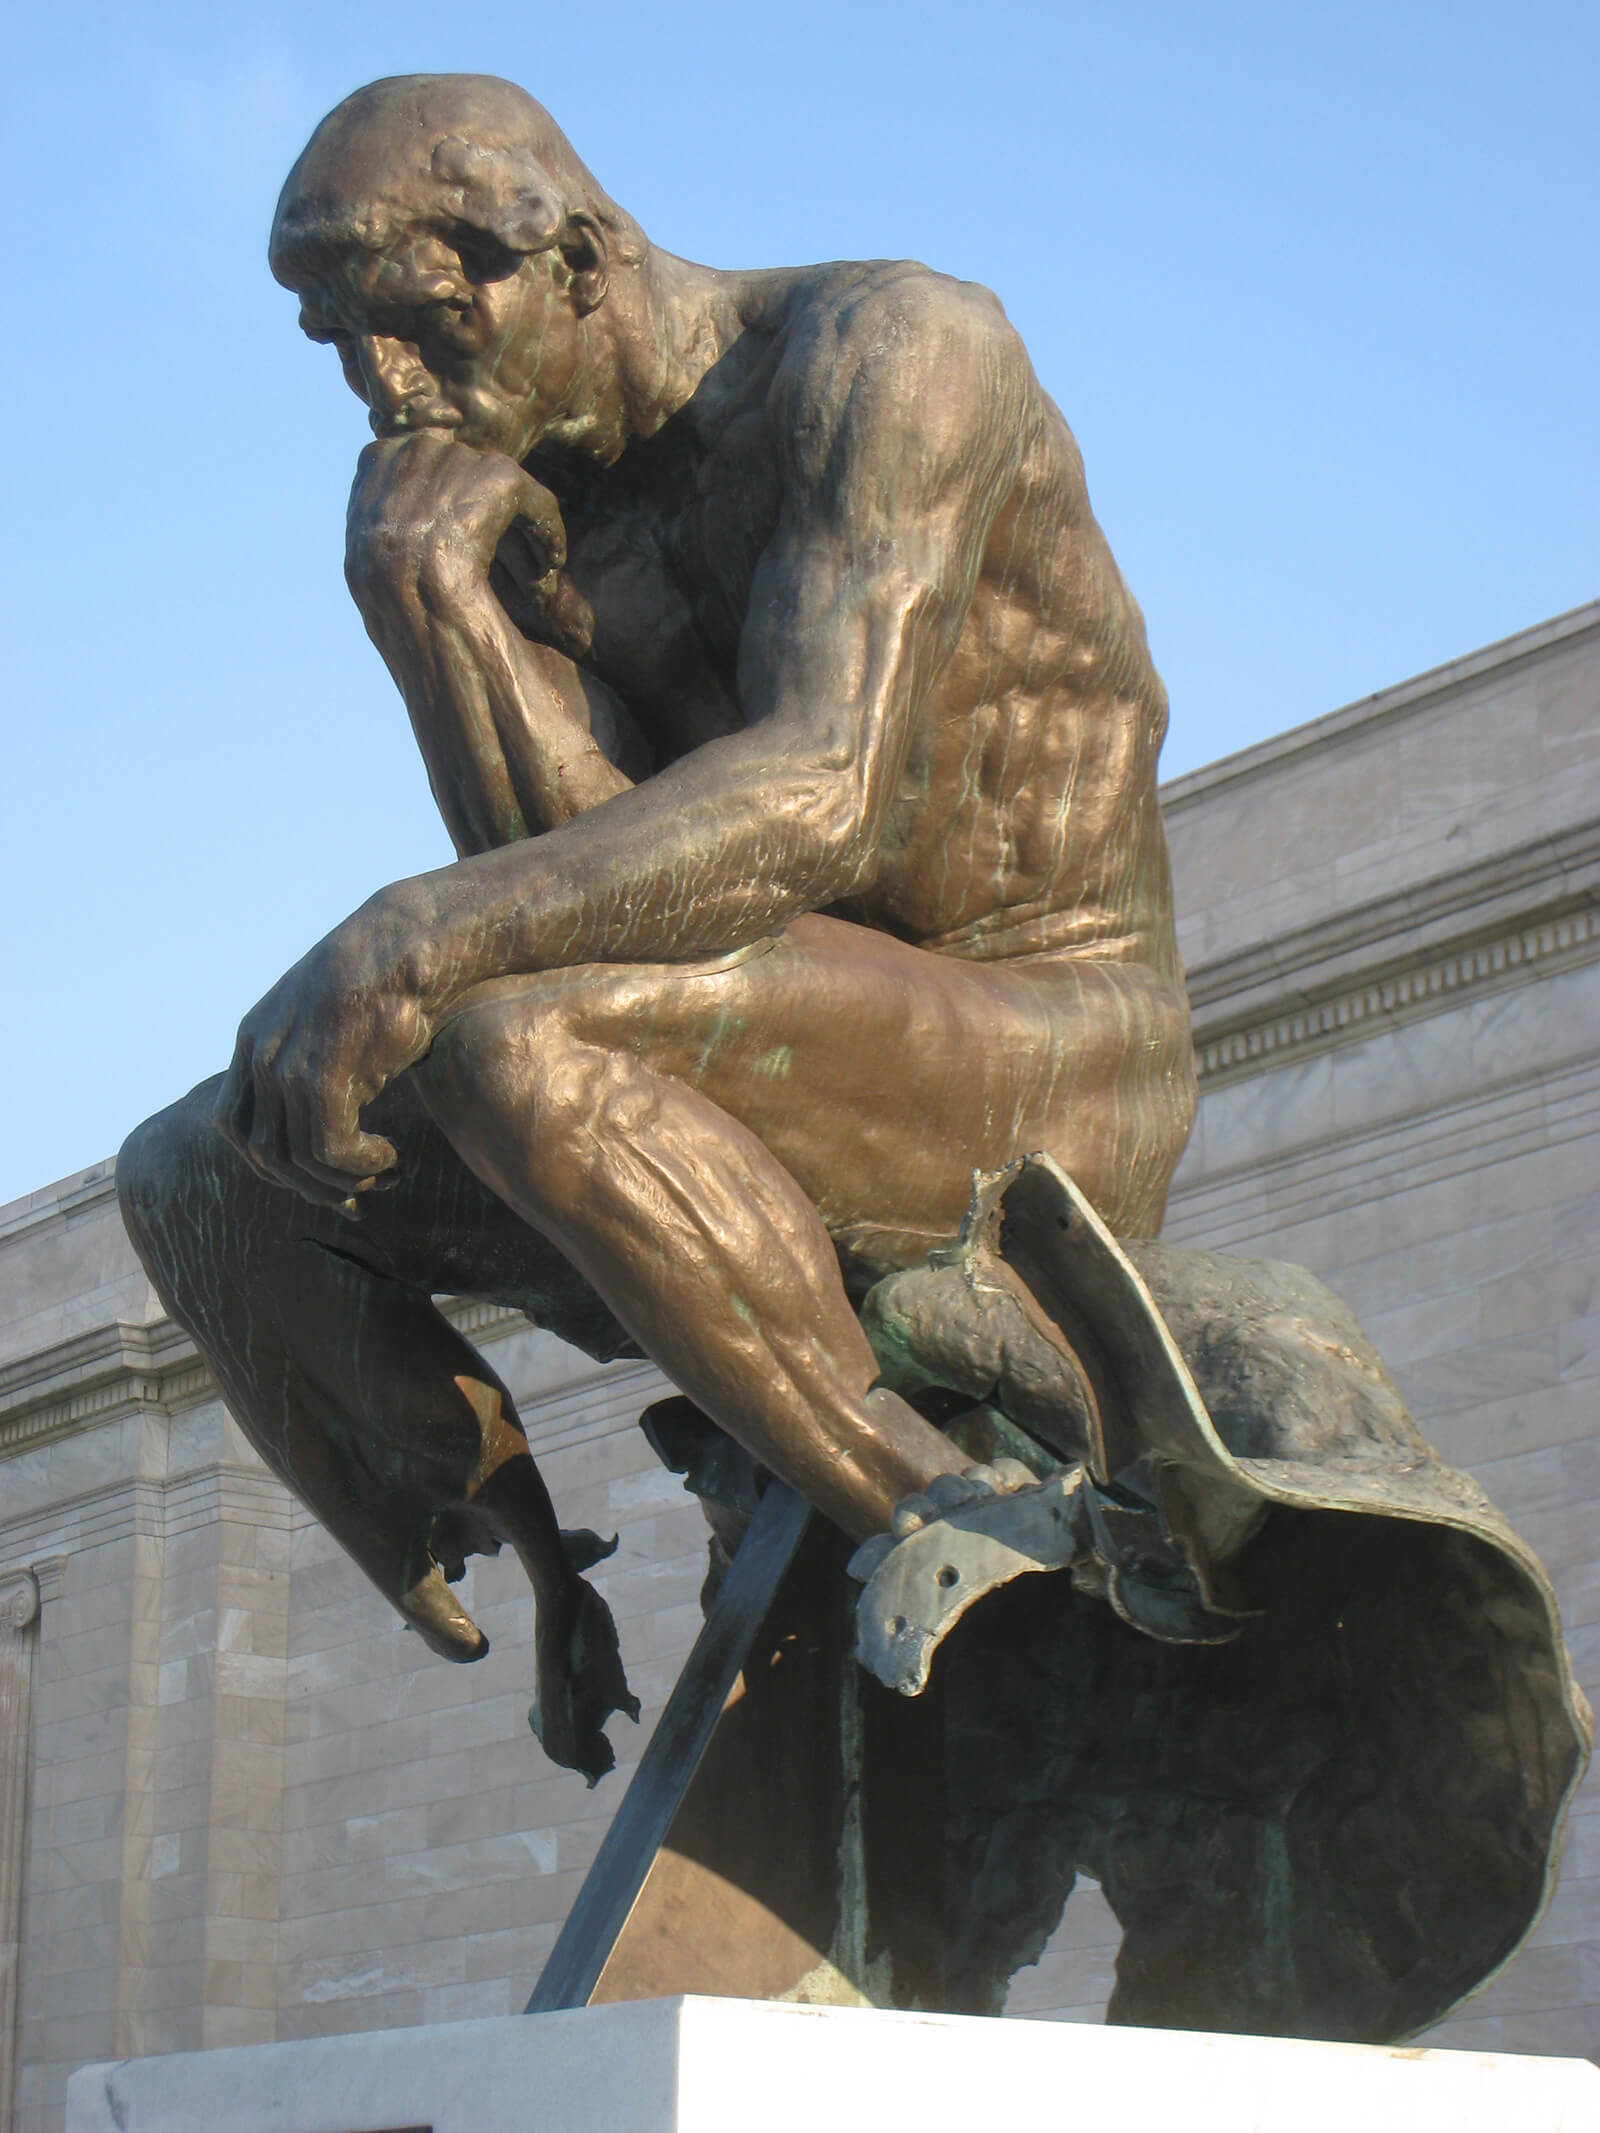 Auguste Rodin's Thinker was damaged at the Cleveland Museum of Art, Cleveland, Ohio, US | STIRworld